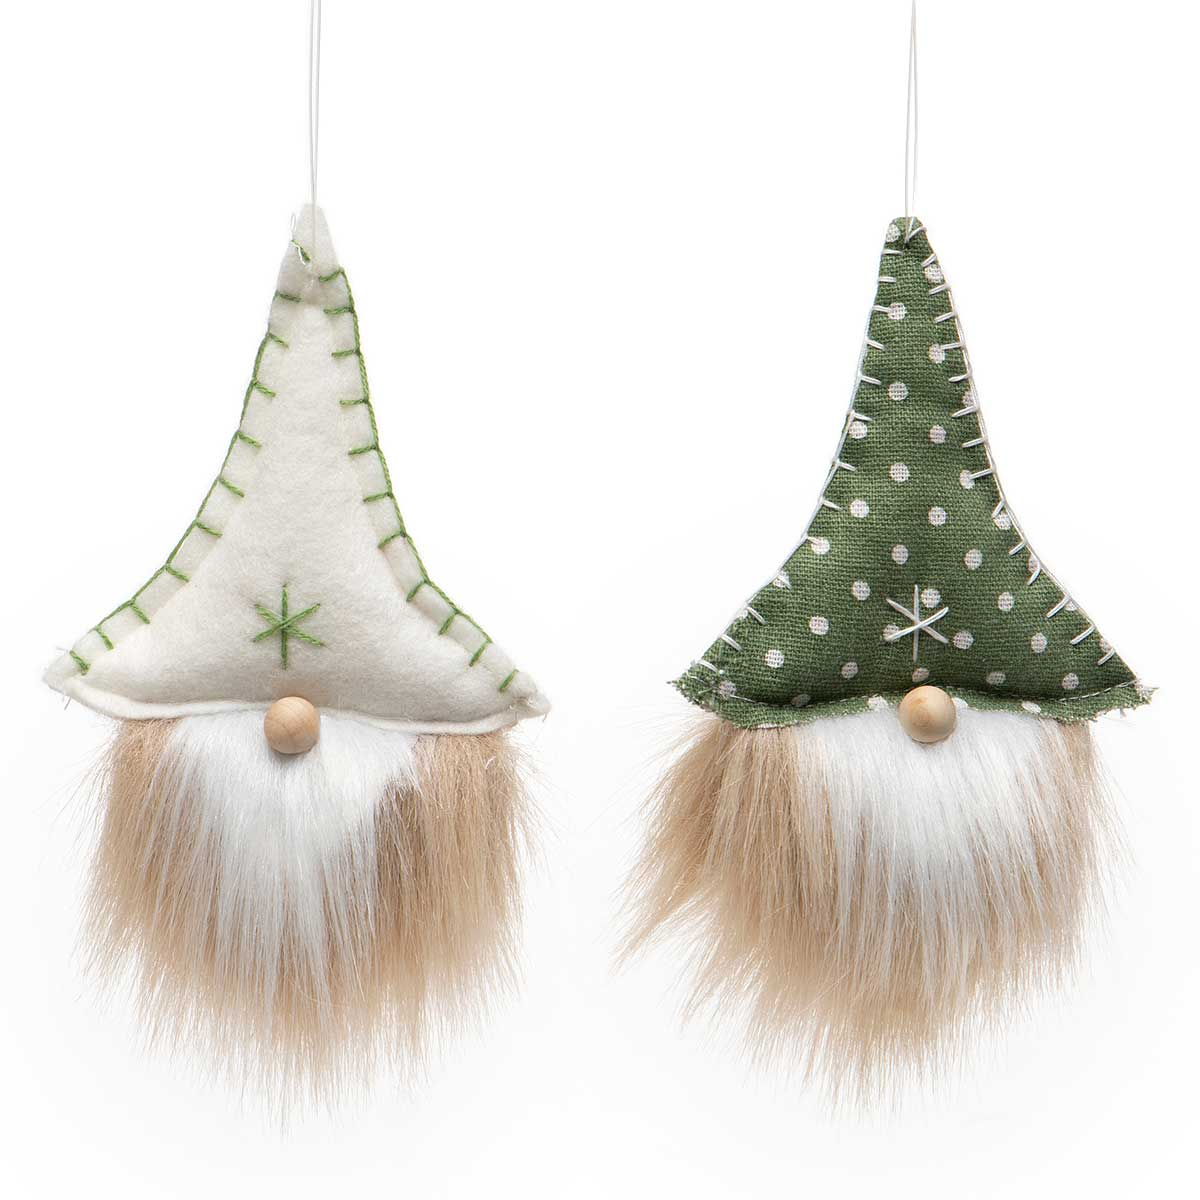 PINDOT GNOME ORNAMENT WITH SNOWFLAKE